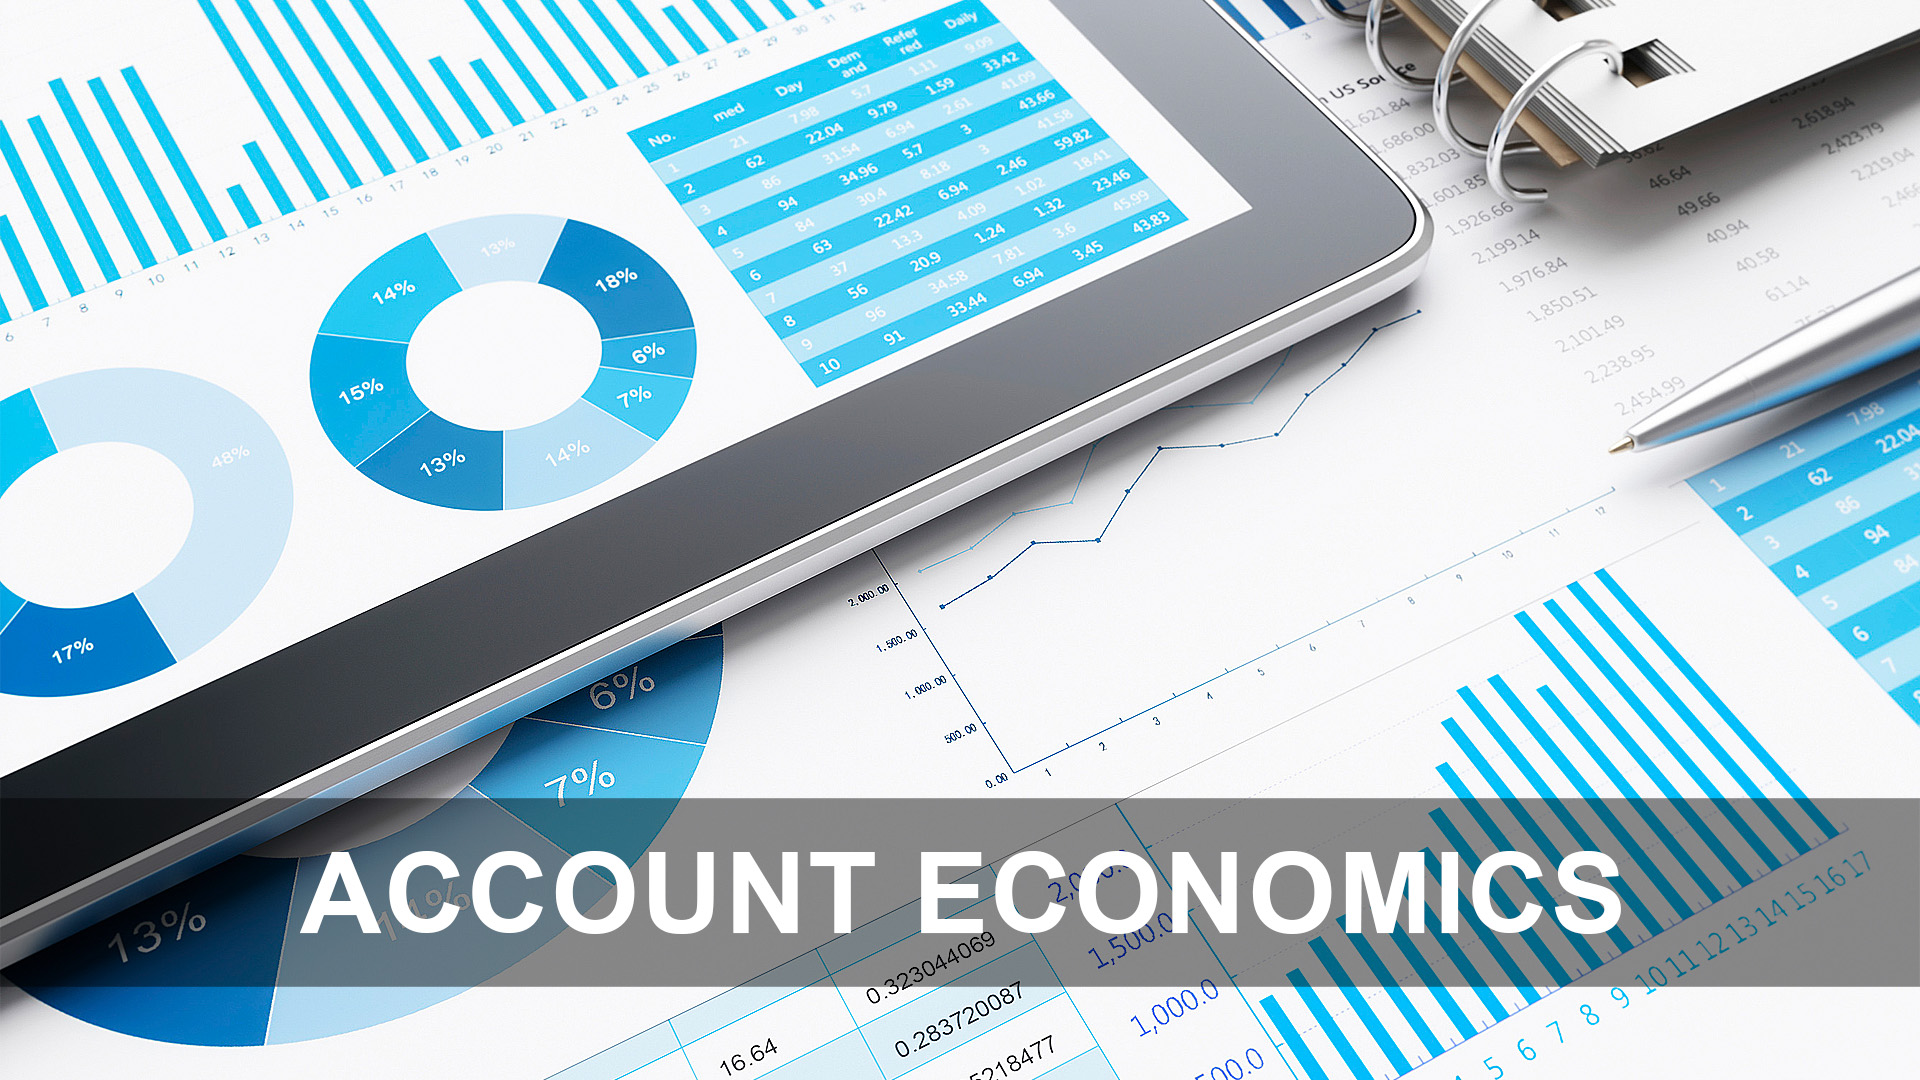 Account Economics - KAM.jpg